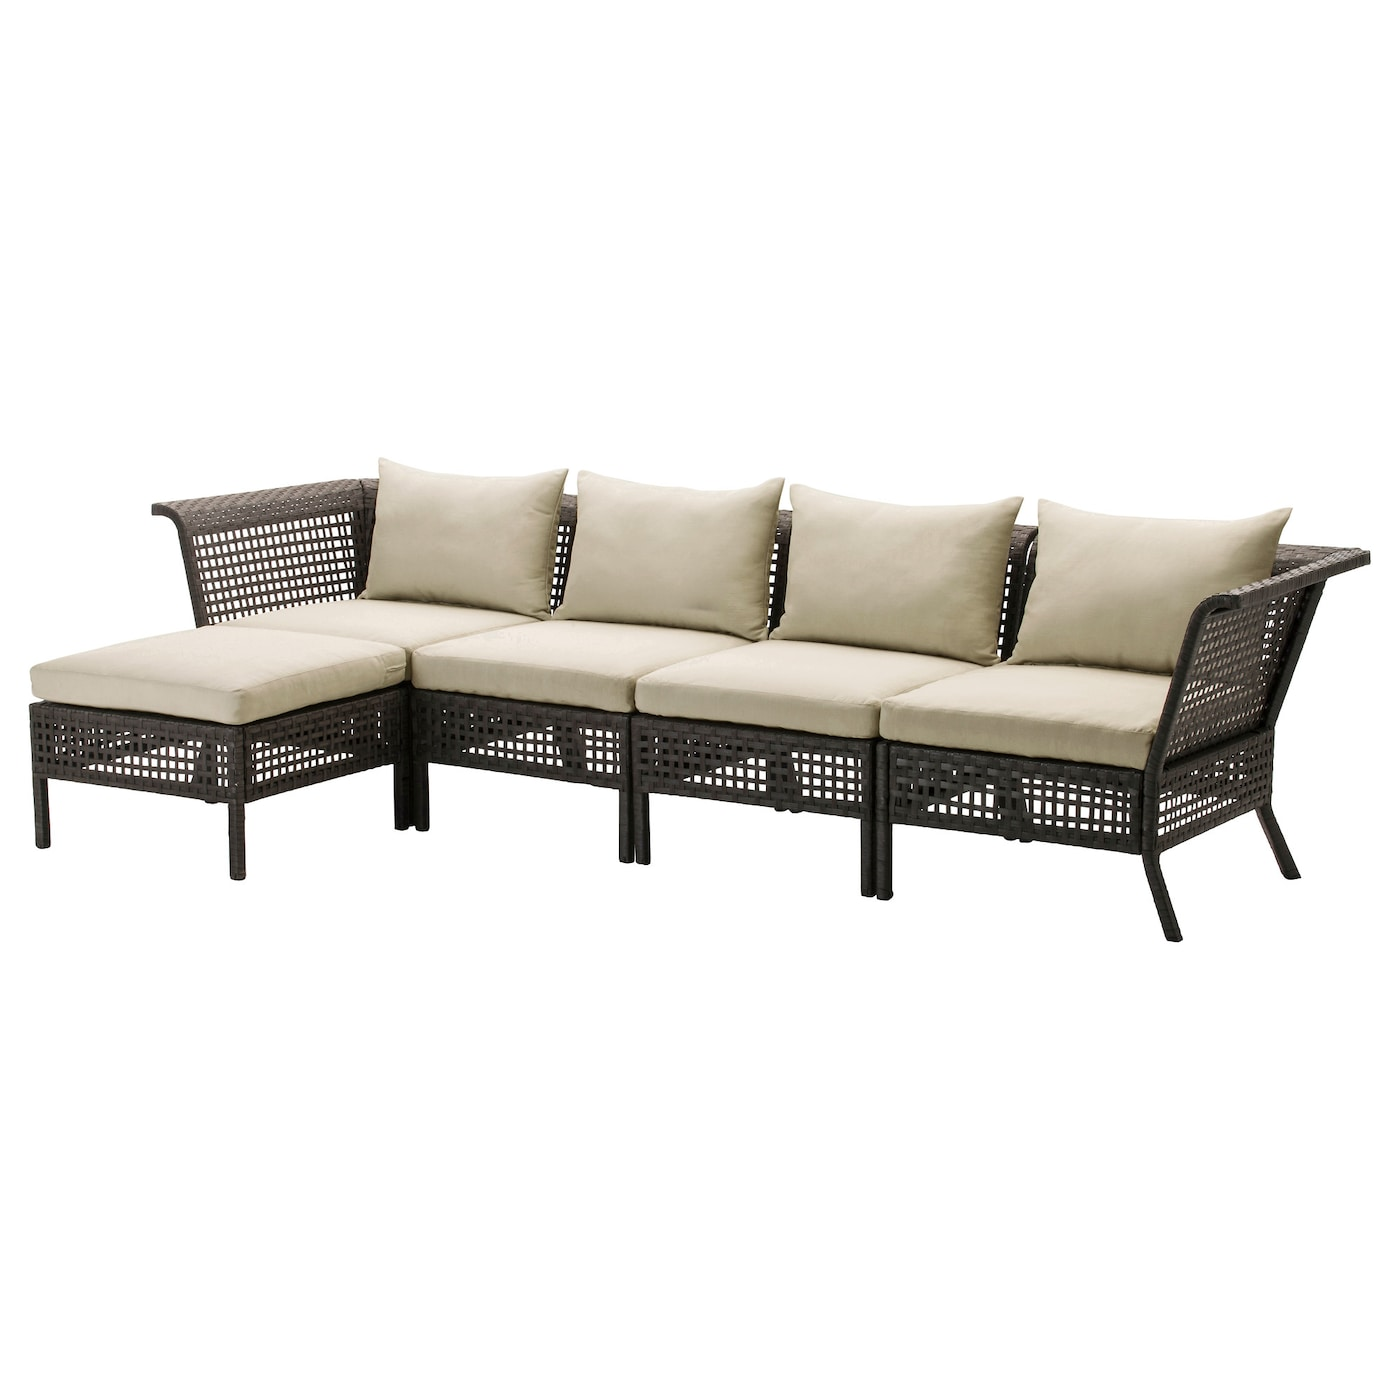 IKEA KUNGSHOLMEN 4-seat sofa with footstool, outdoor